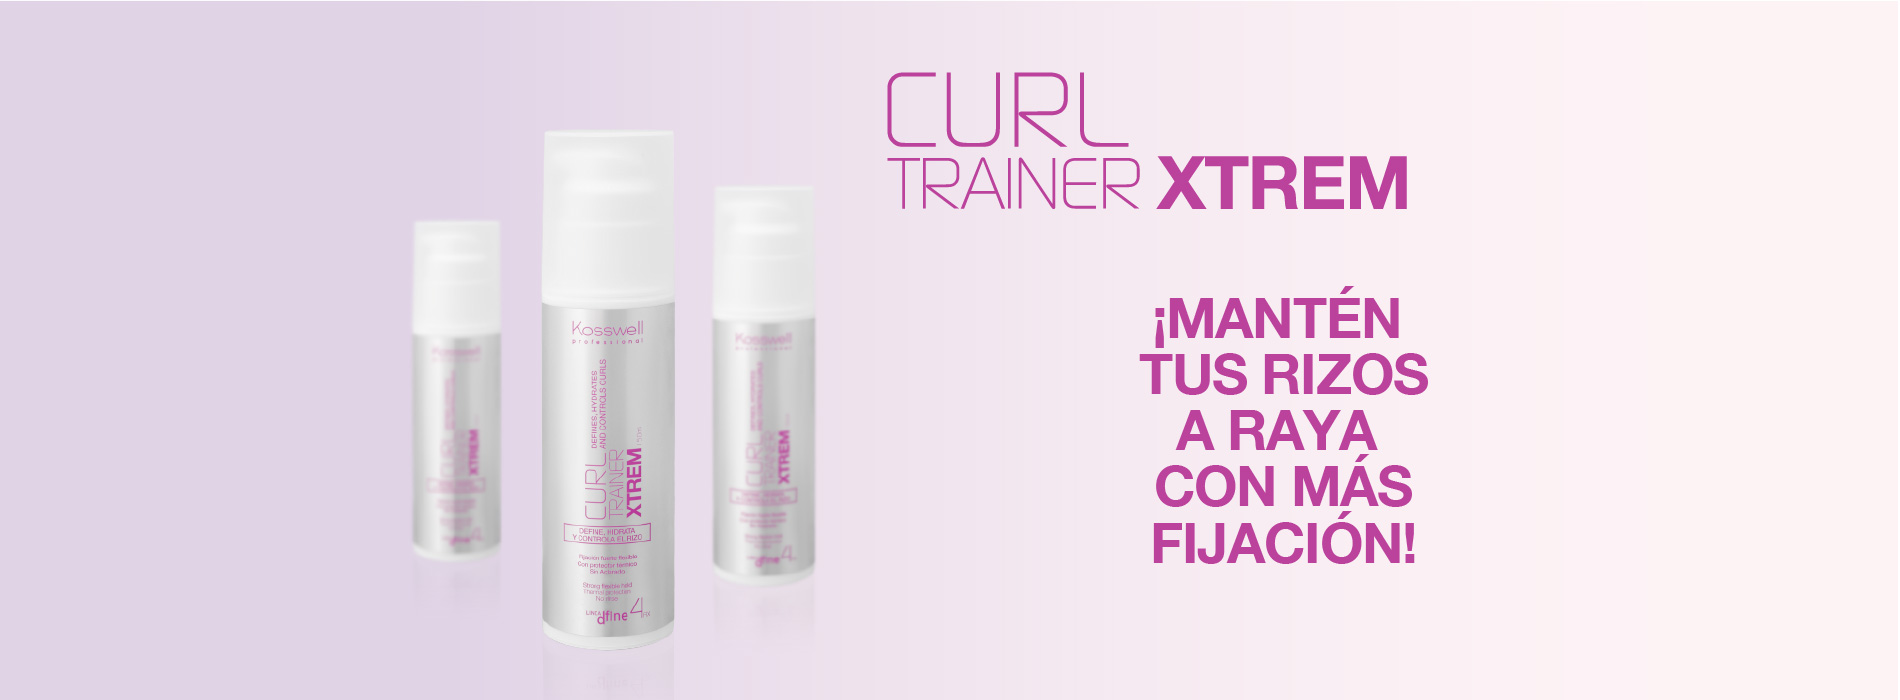 Curl Trainer Xtrem de Kosswell